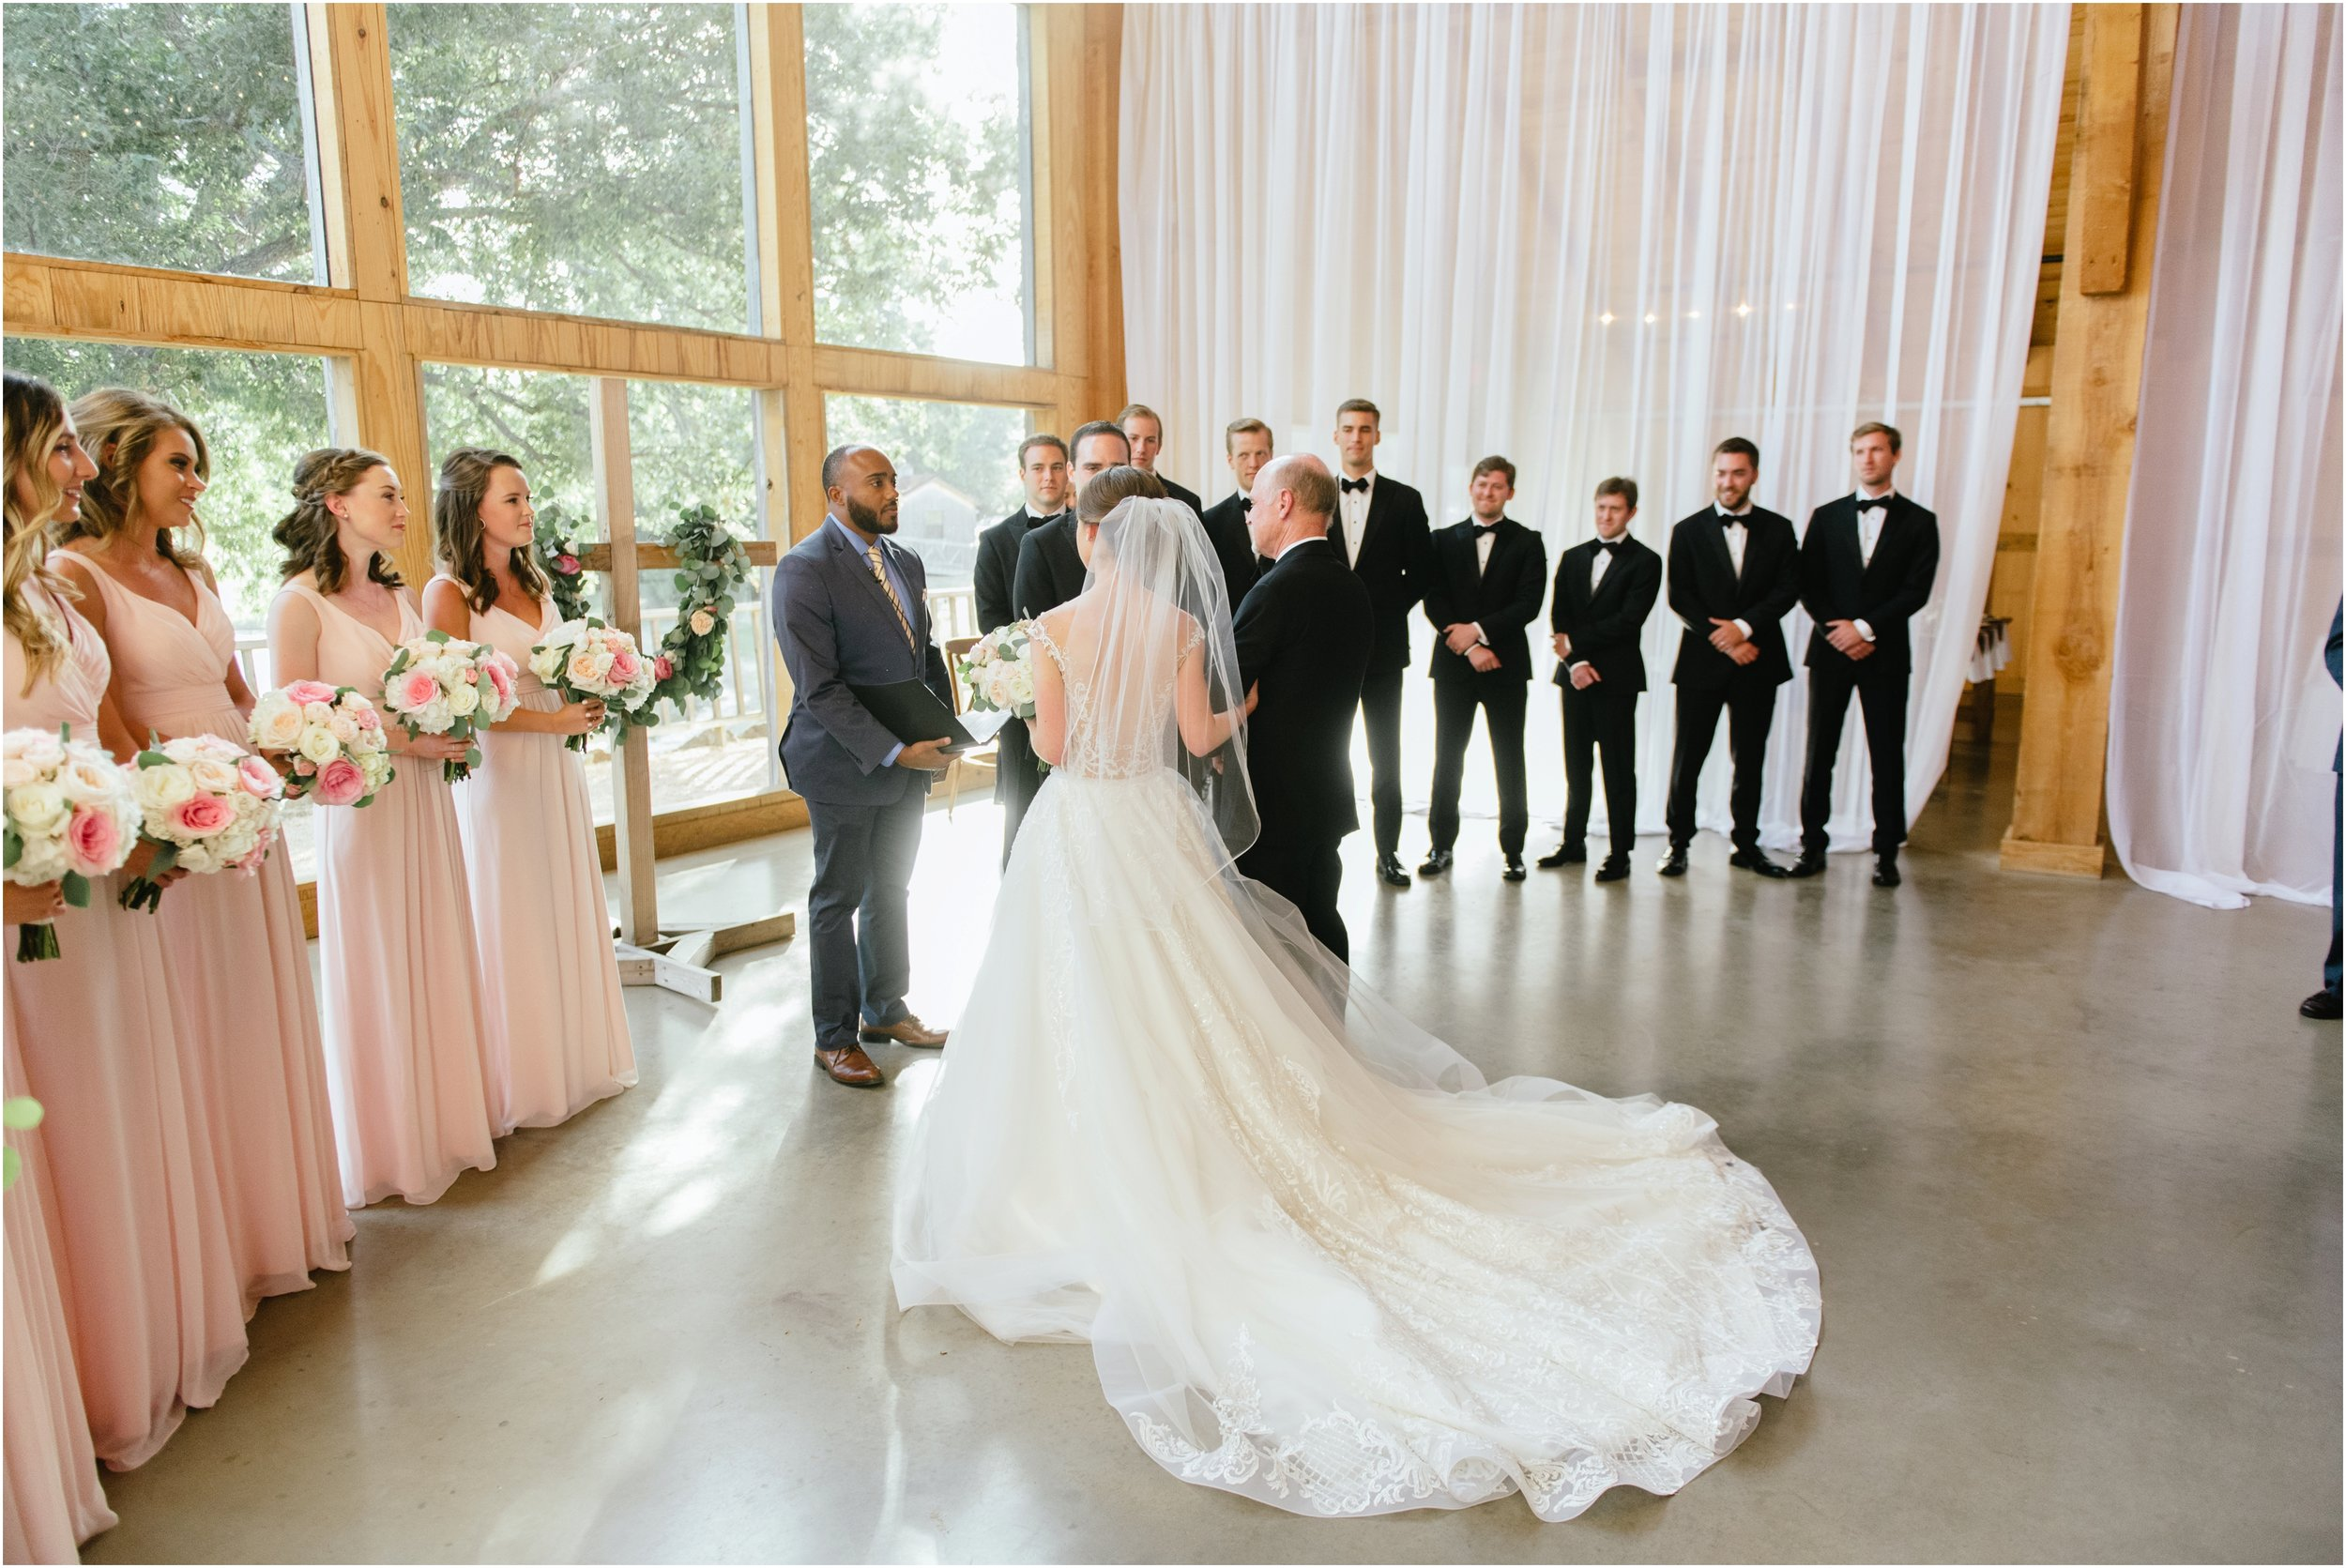 dallasweddingphotographer_fortworthweddingphotographer_texasweddingphotographer_mattandjulieweddings_whiterocklakewedding_KayleighClay_0020.jpg